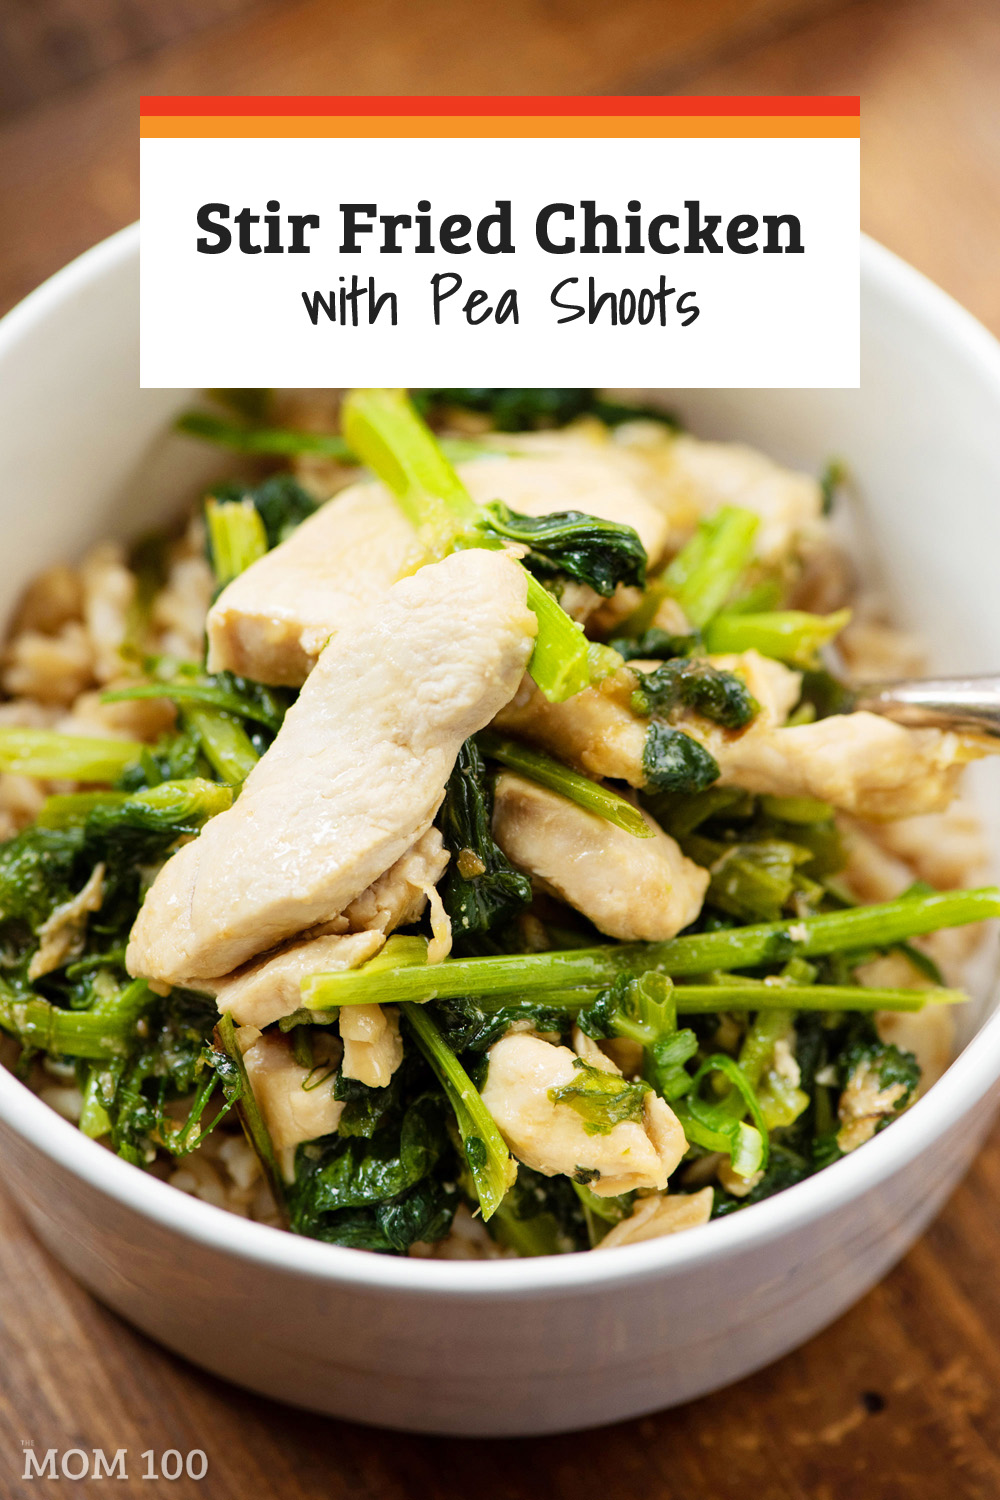 Stir Fried Chicken with Pea Shoots: A simple less-than-30-minute stir fry featuring one of the nicest vegetables of Spring.